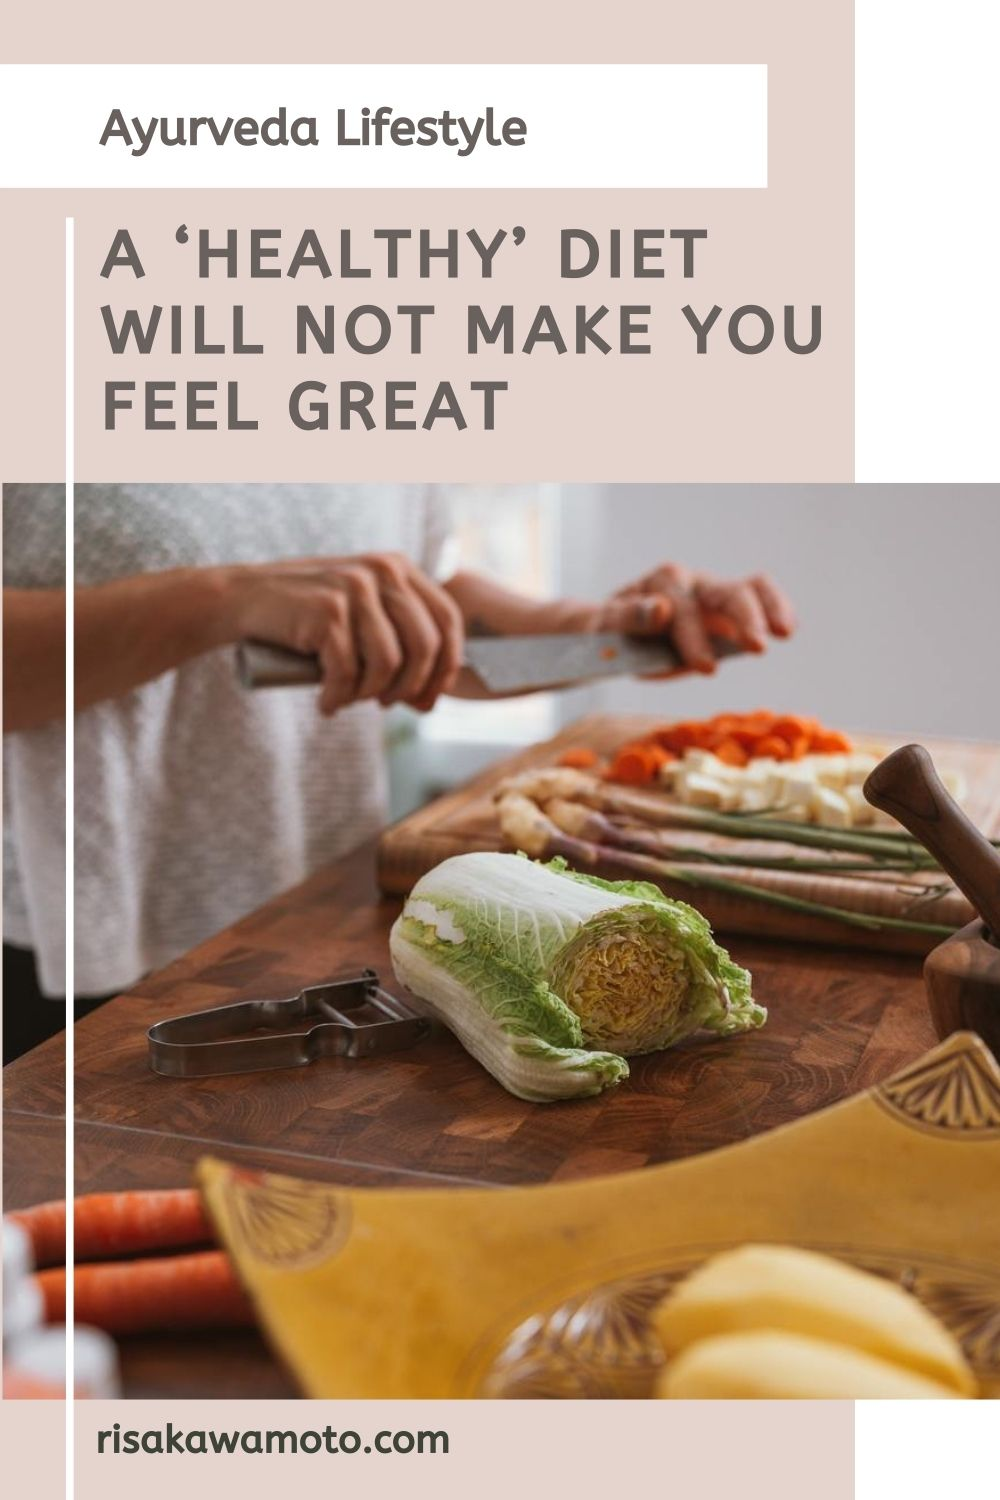 Ayurveda Lifestyle: A Healthy Diet Will Not Make You Feel Great